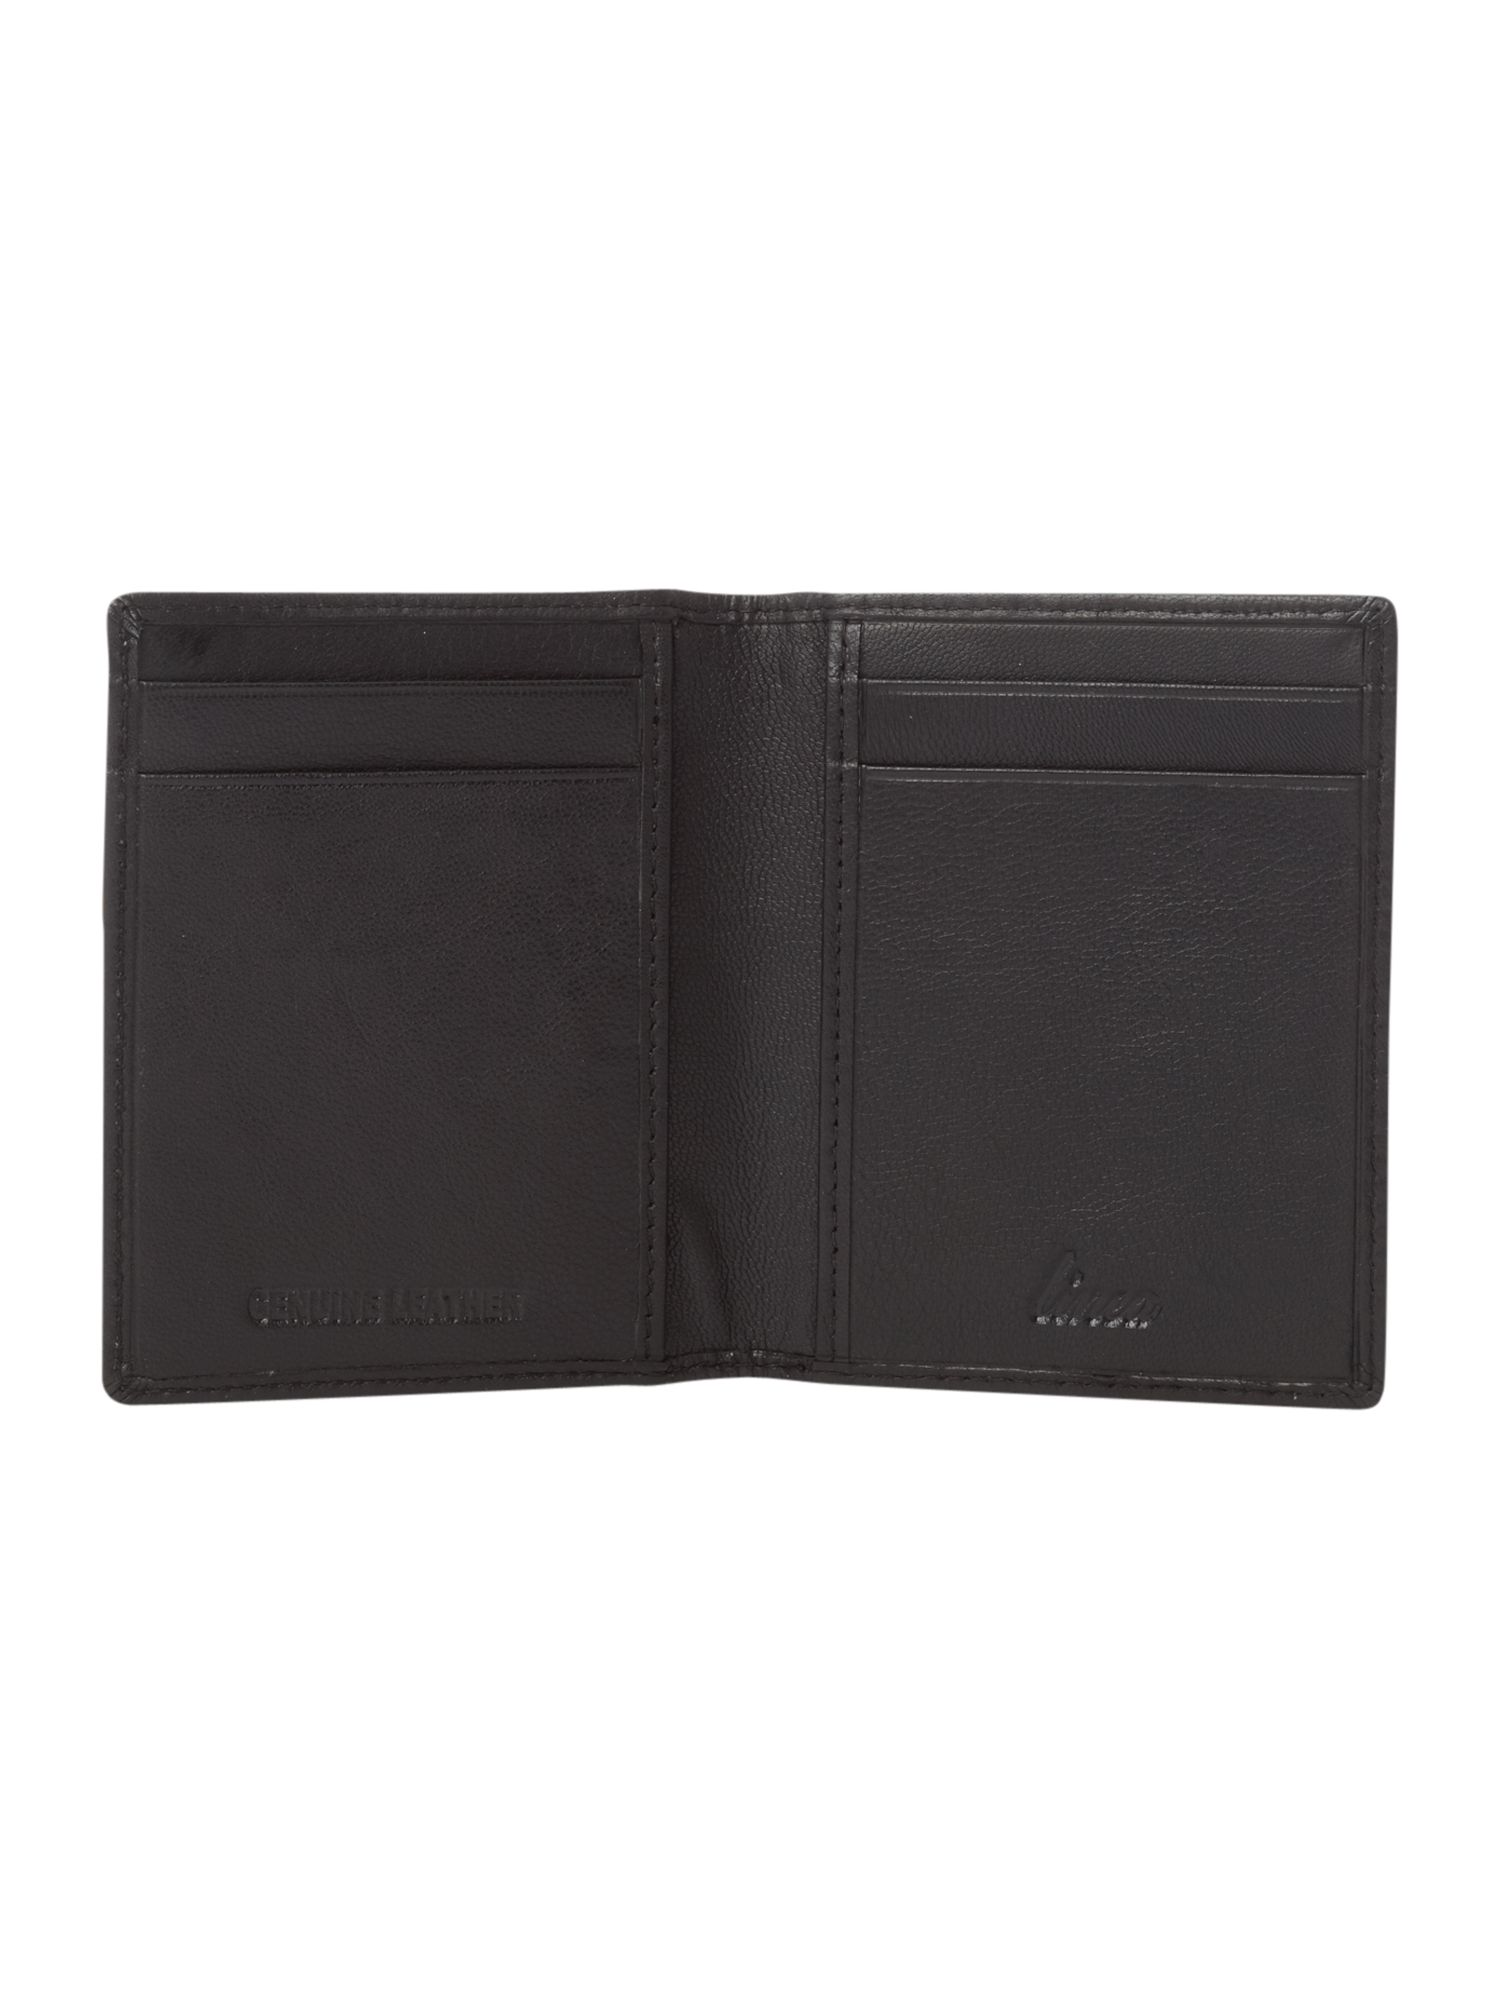 Linea smart credit card holder